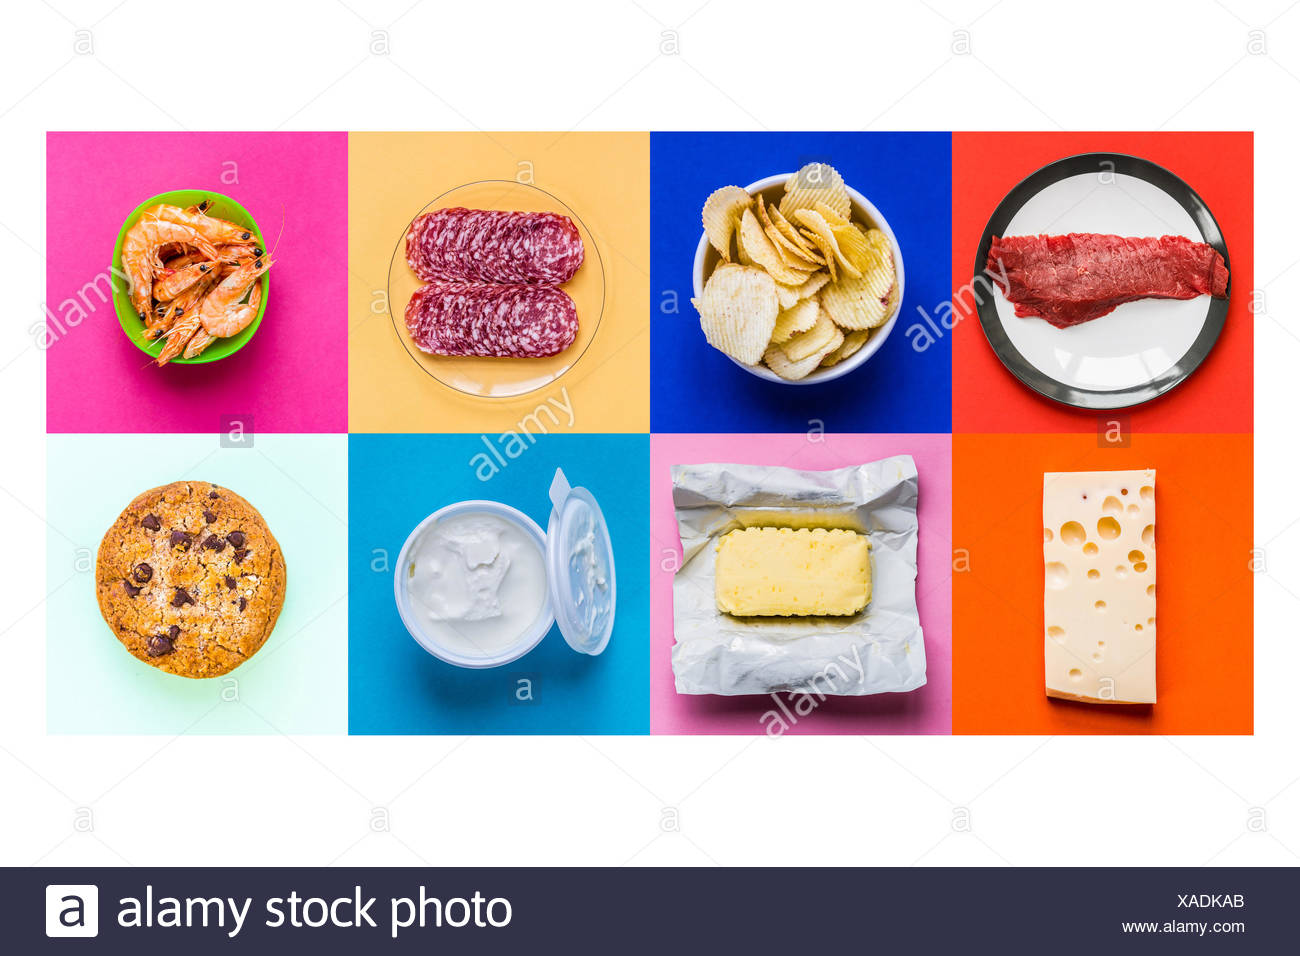 Cholesterol -rich foods. - Stock Image